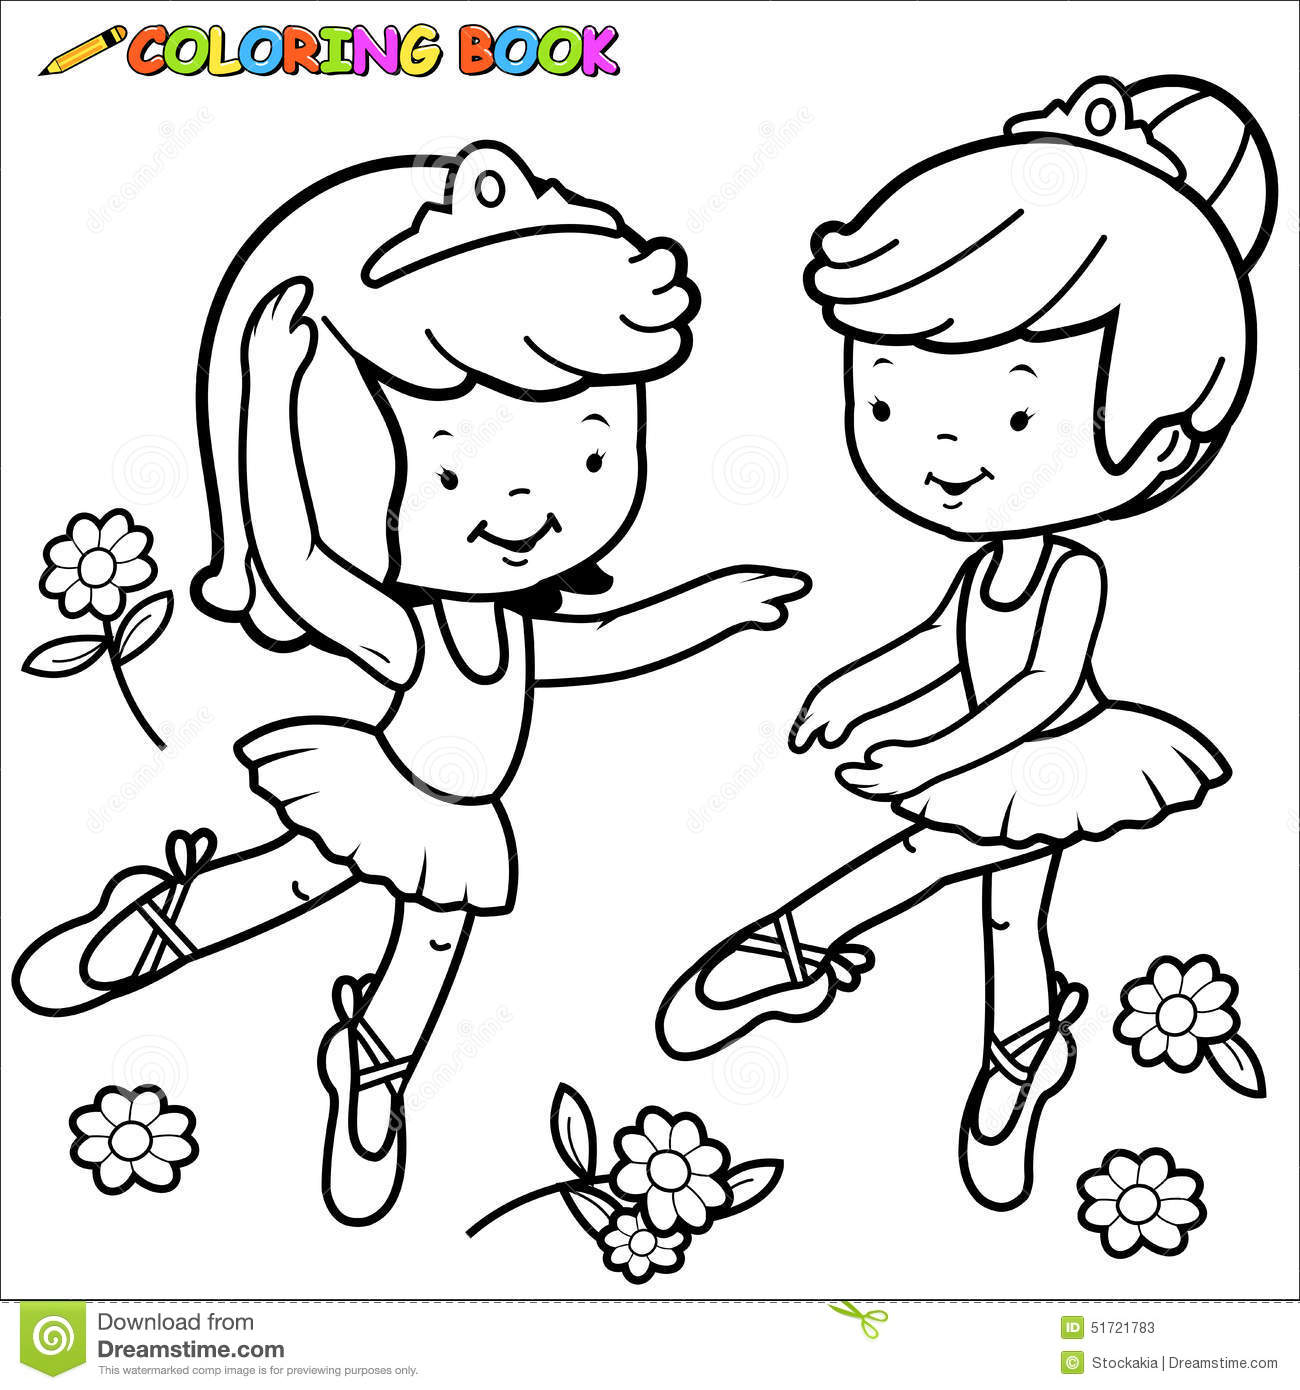 43 And White Outline Image Of Two Cute Ballerina Dancer Girls Dancing Disney Princess Coloring Pages